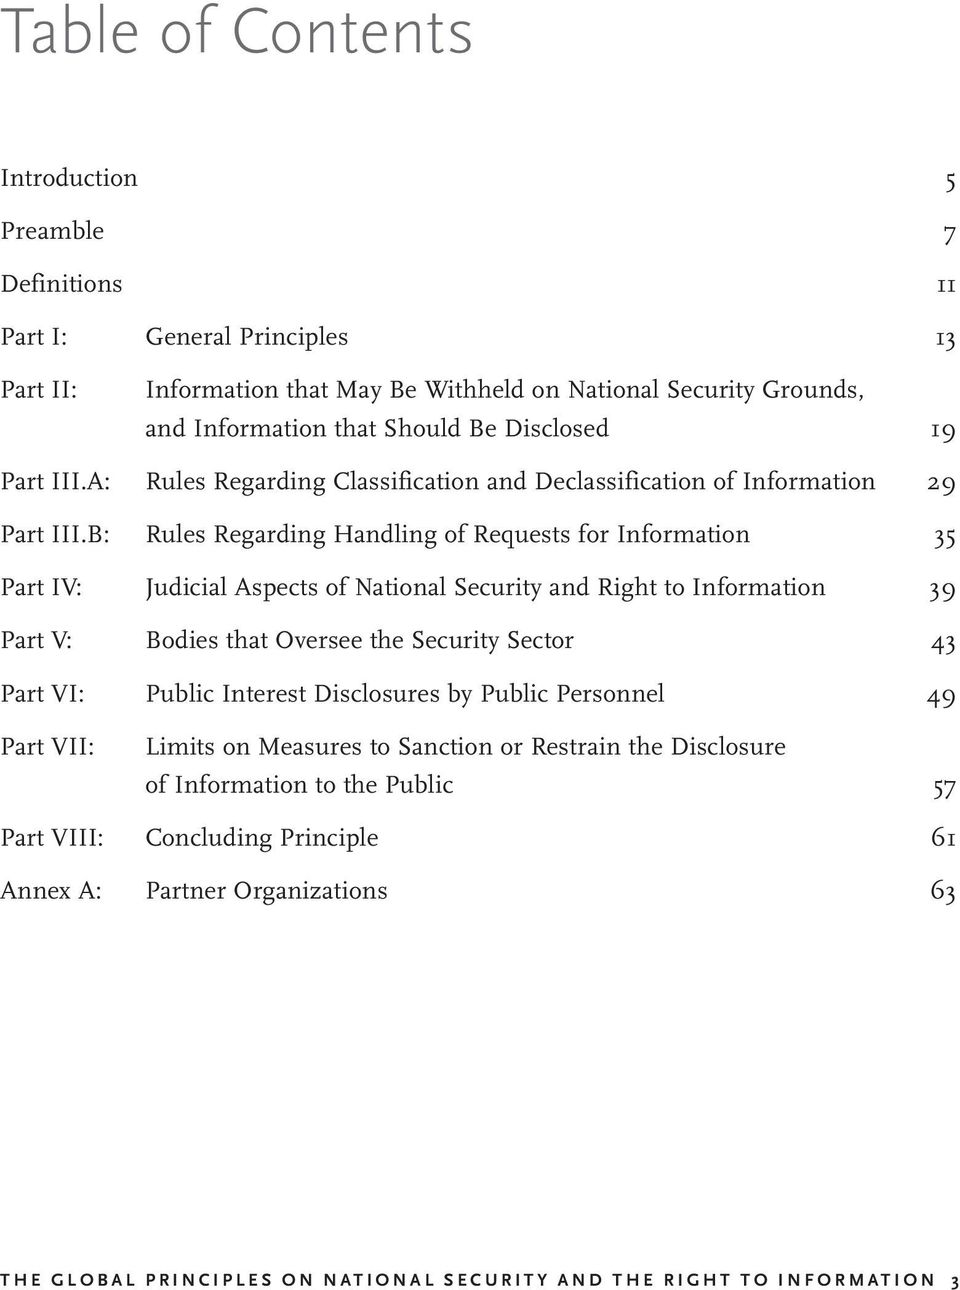 B: Rules Regarding Handling of Requests for Information 35 Part IV: Judicial Aspects of National Security and Right to Information 39 Part V: Bodies that Oversee the Security Sector 43 Part VI: